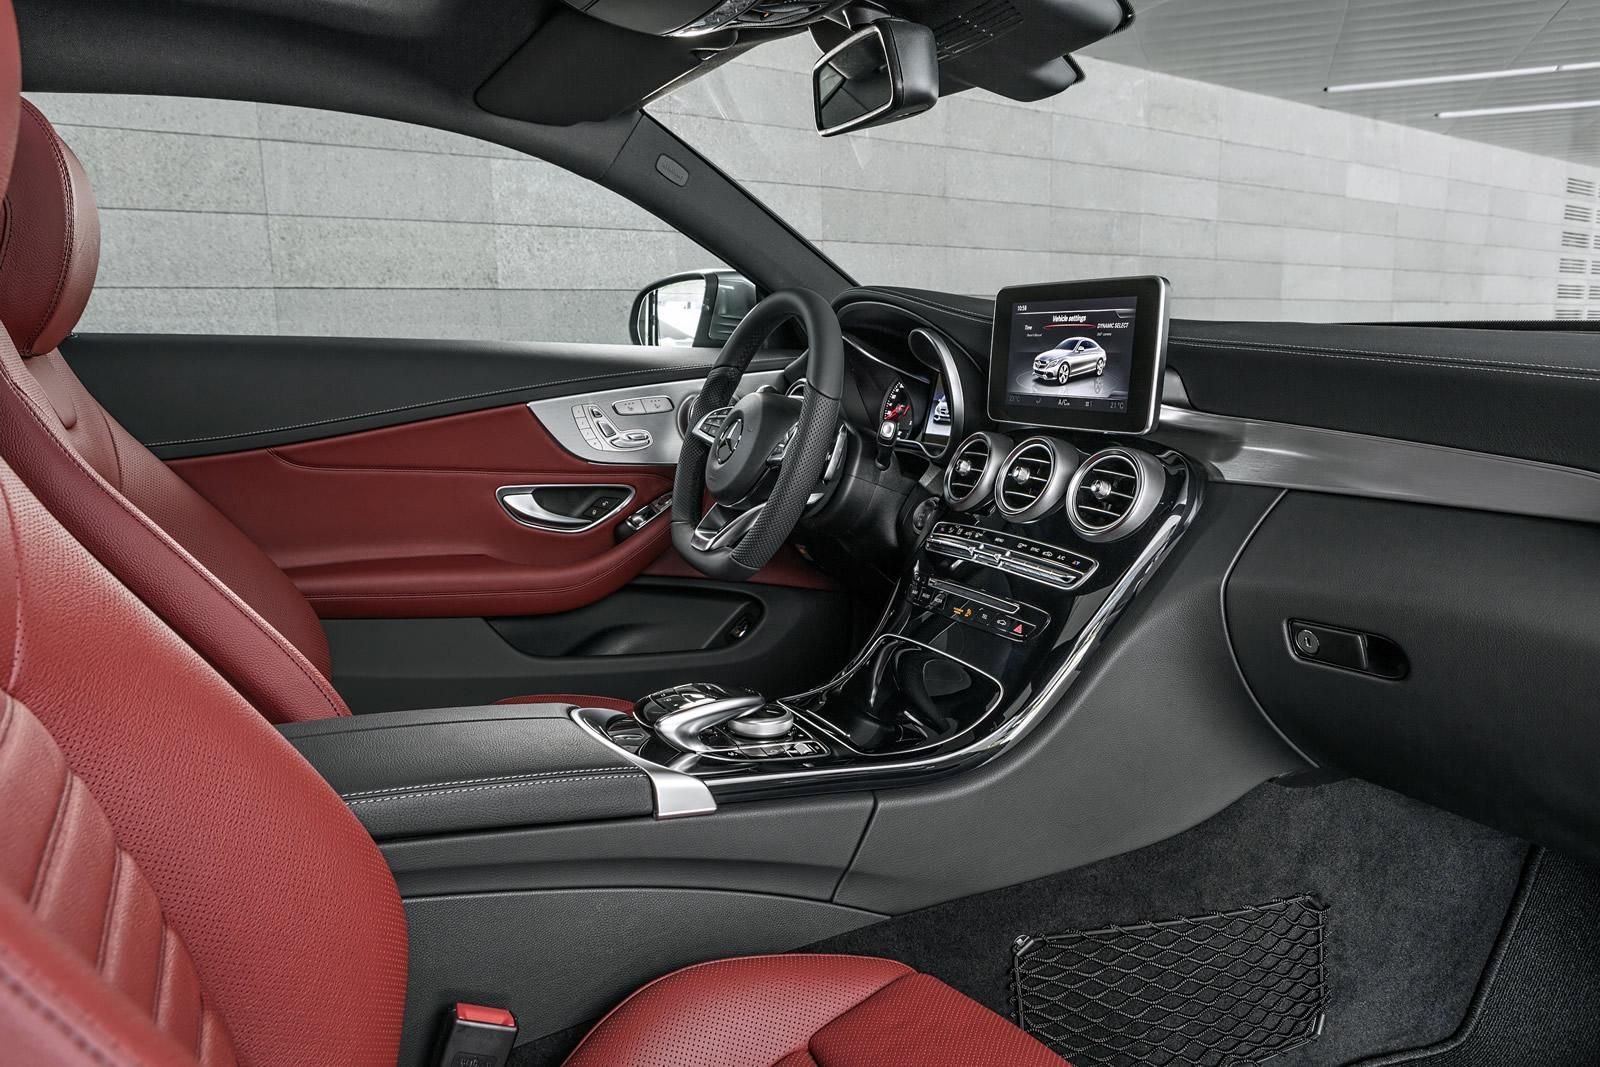 medium resolution of image result for red mercedes glc interior